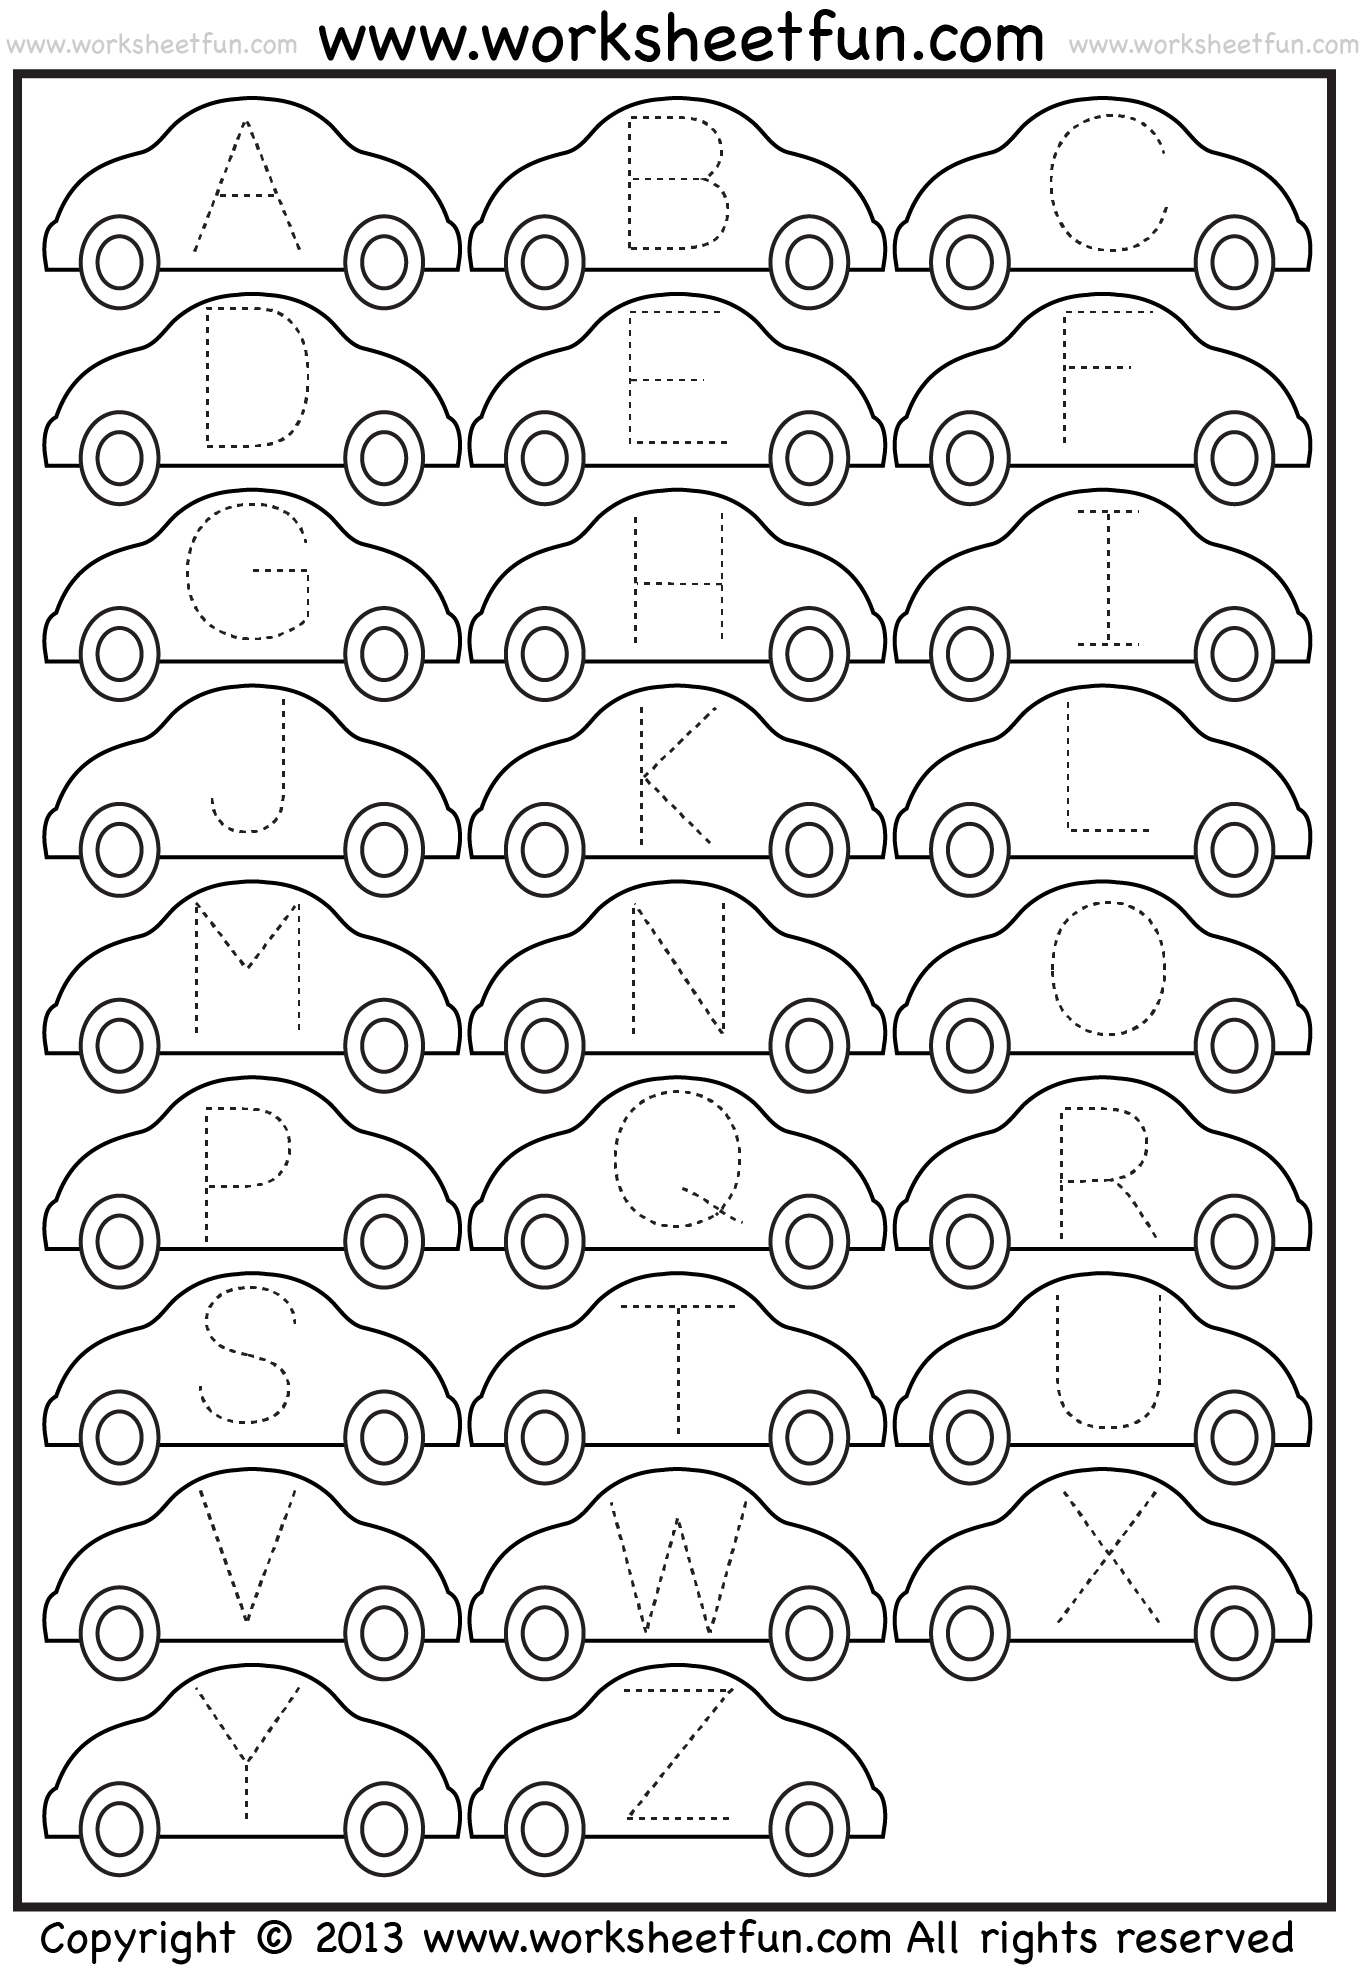 Letter Tracing Worksheet – Car / Free Printable Worksheets